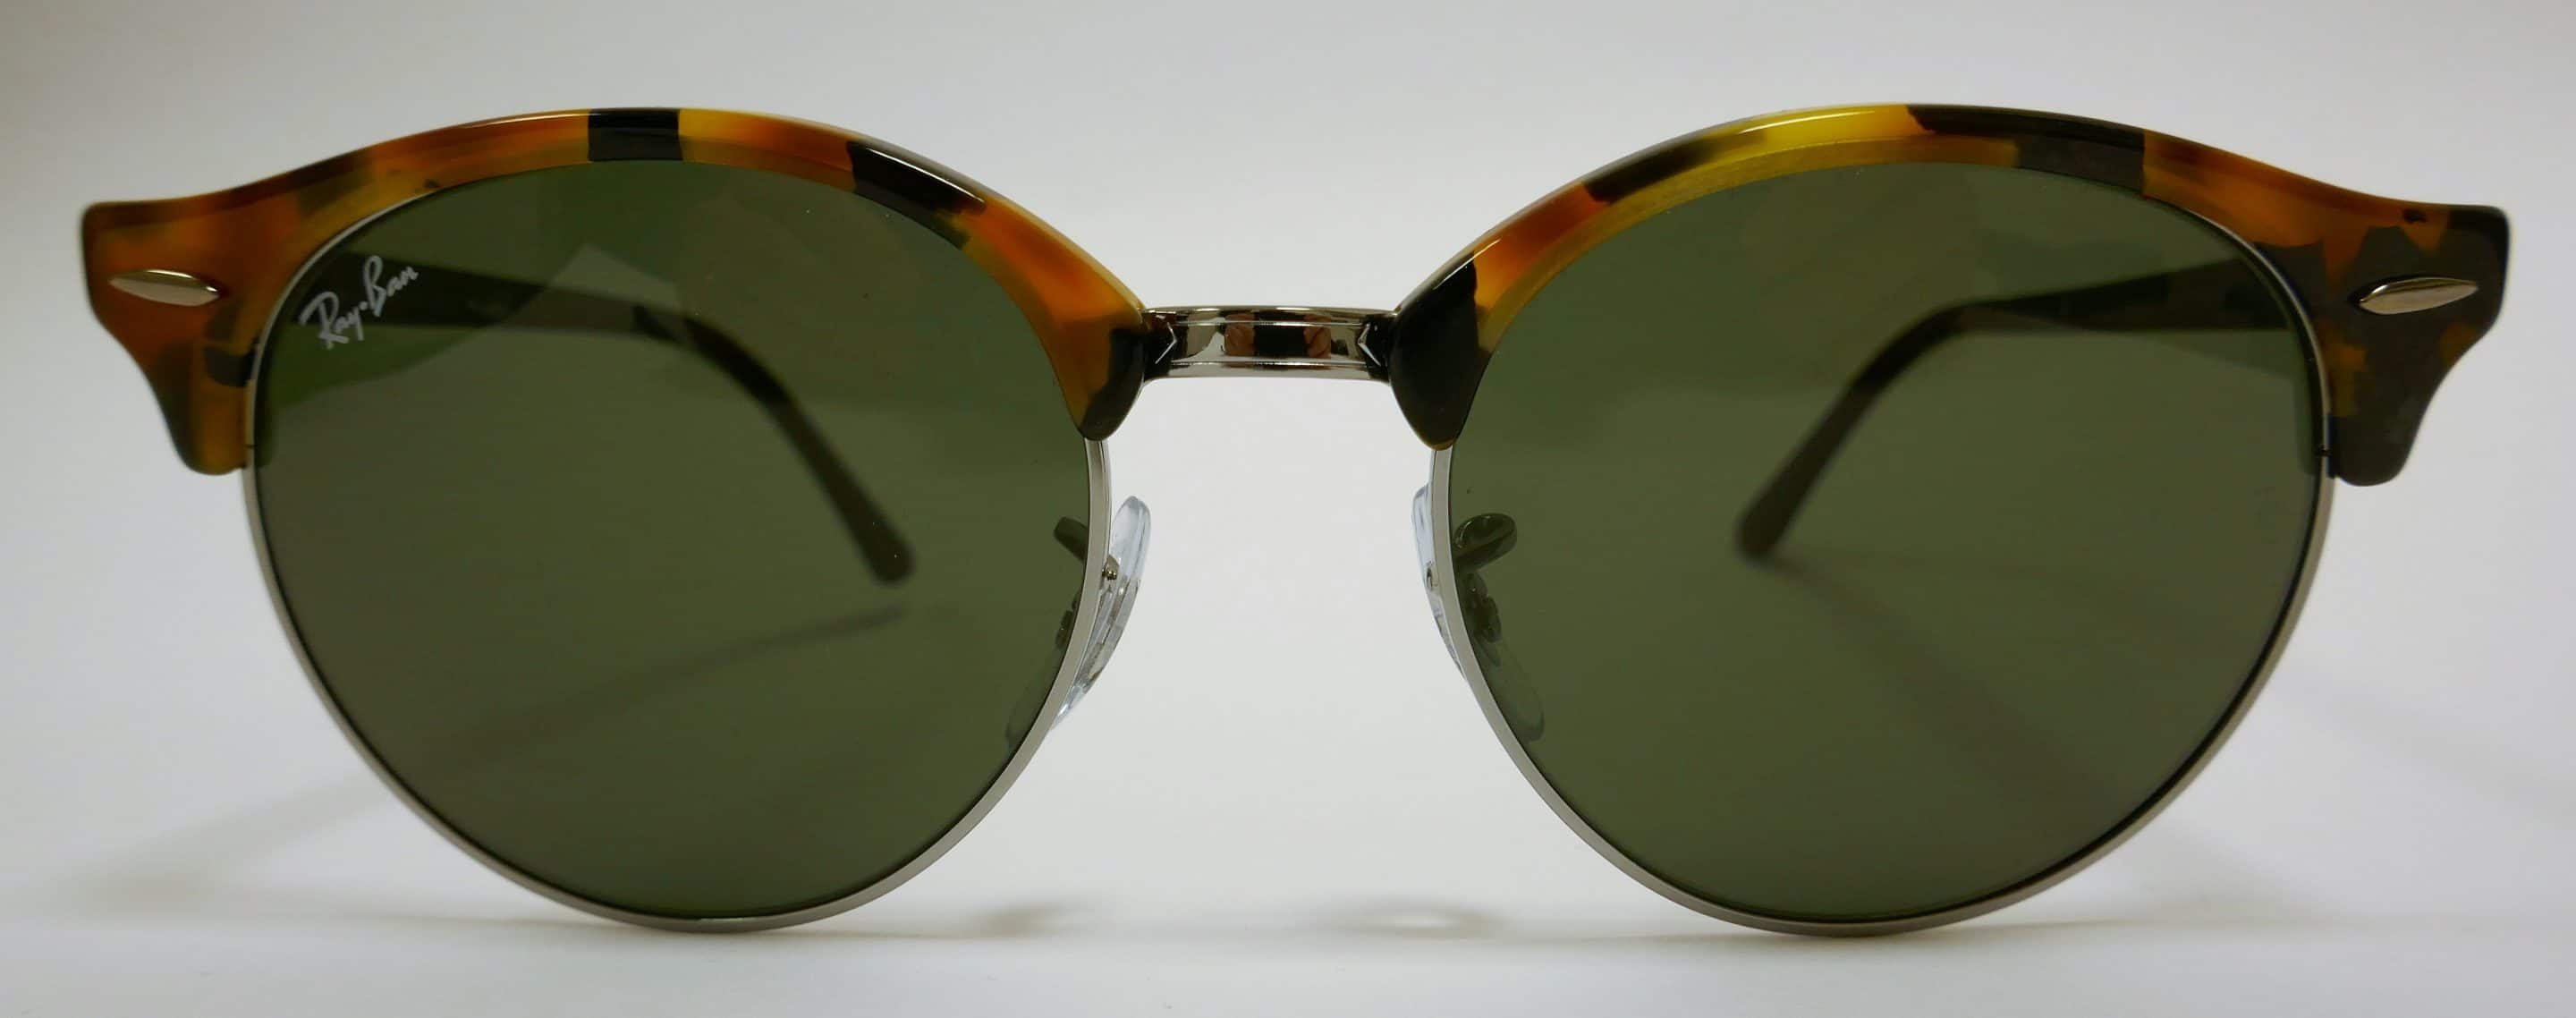 lunettes ray-ban chics avoise